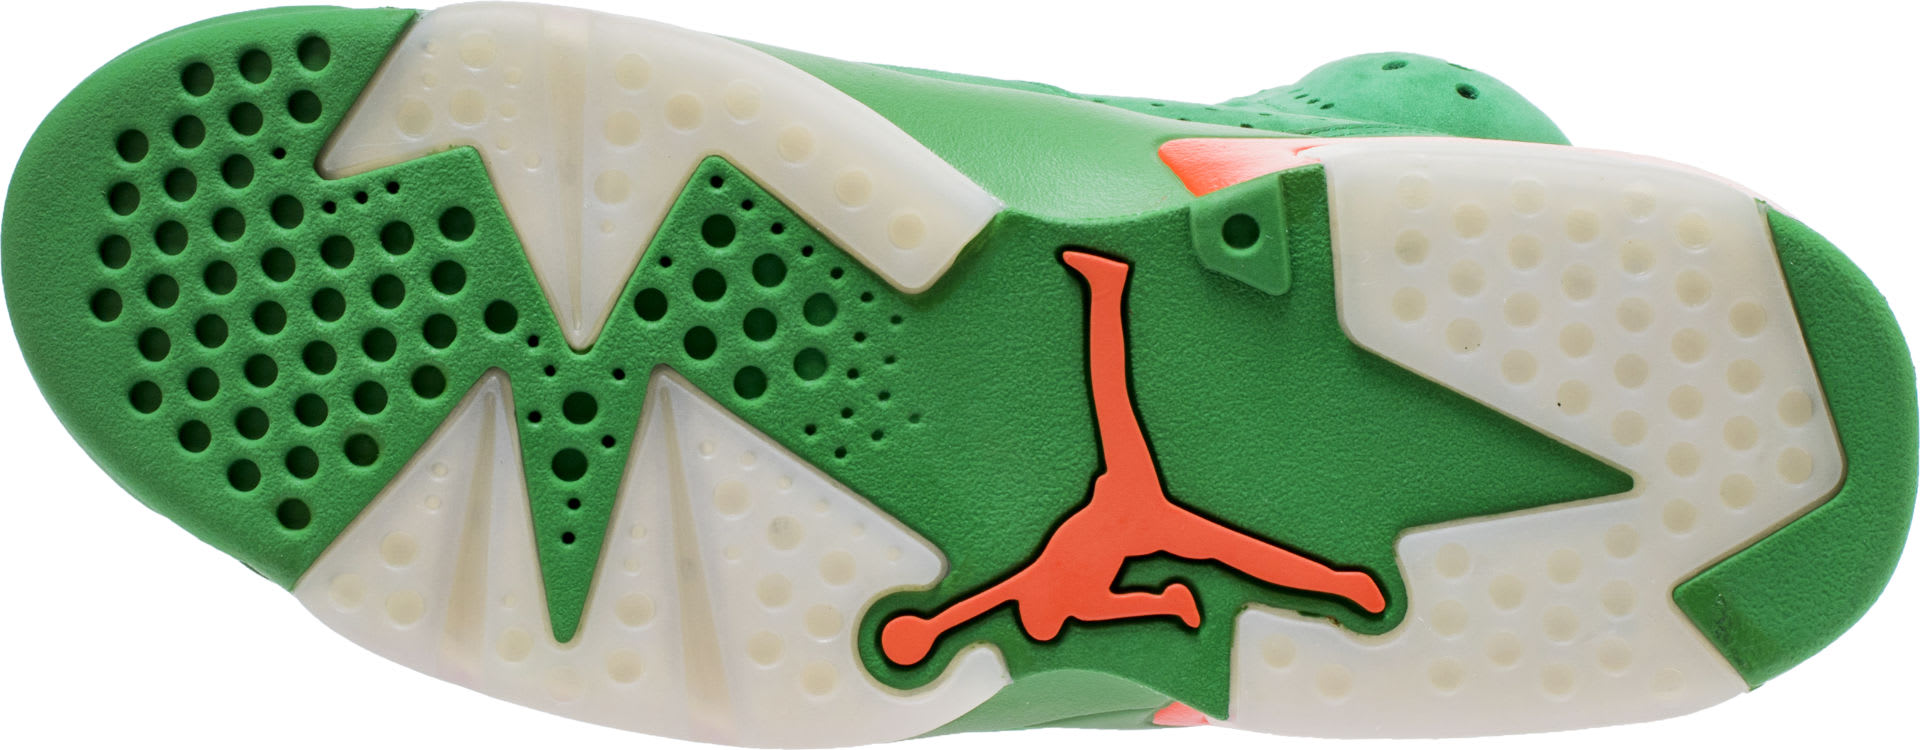 Air Jordan 6 VI Gatorade Green Release Date AJ5986-335 Sole